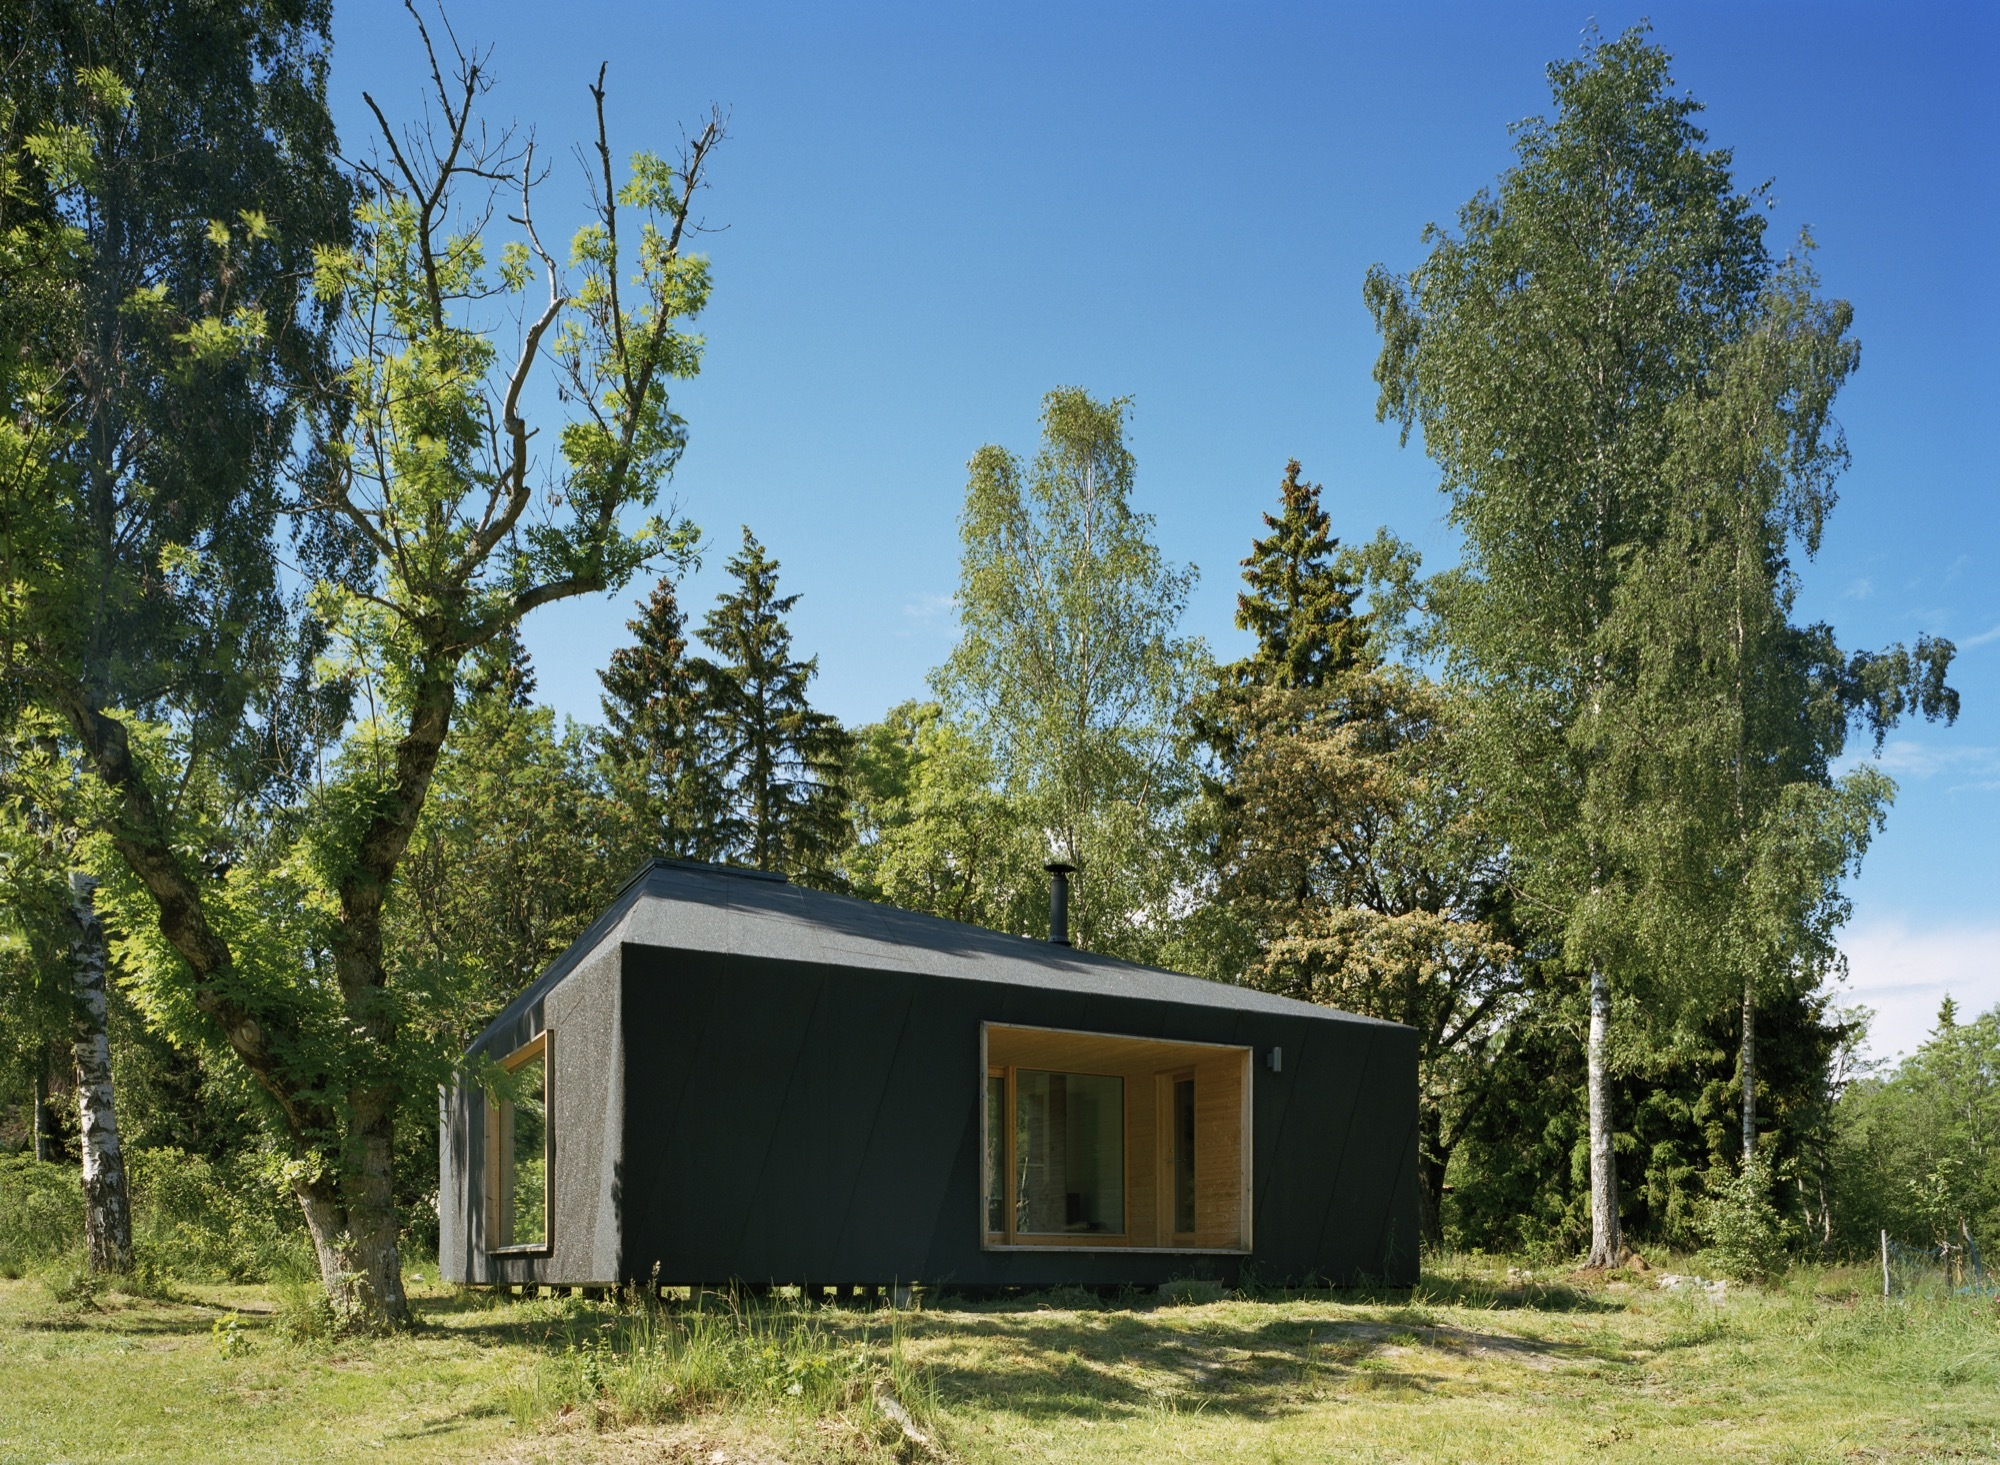 Elevates design of the cabin makes it eco-friendly with ease